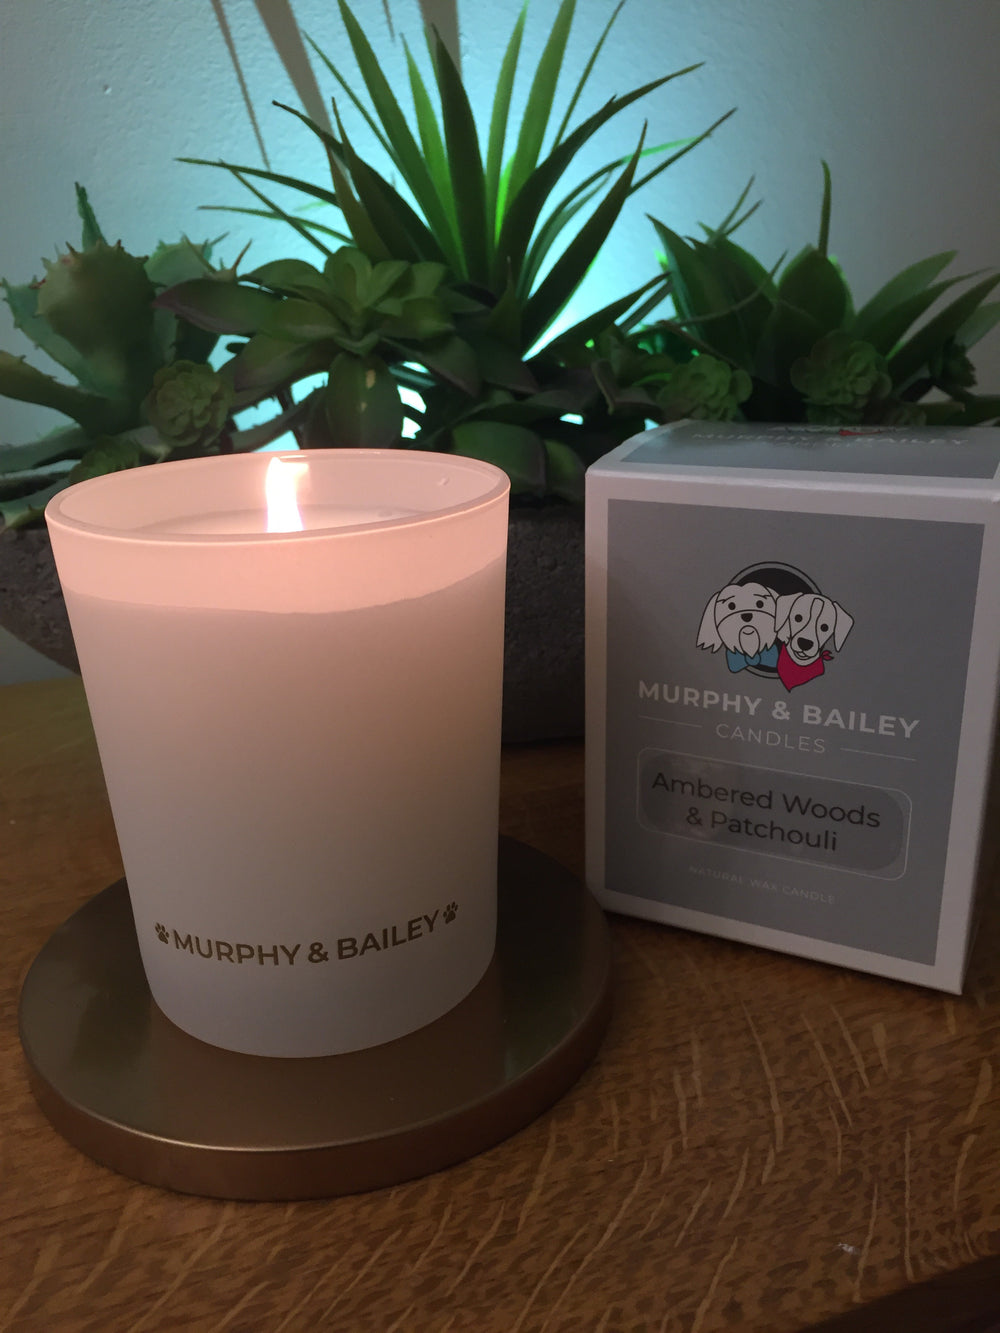 Ambered Woods and Patchouli Candle